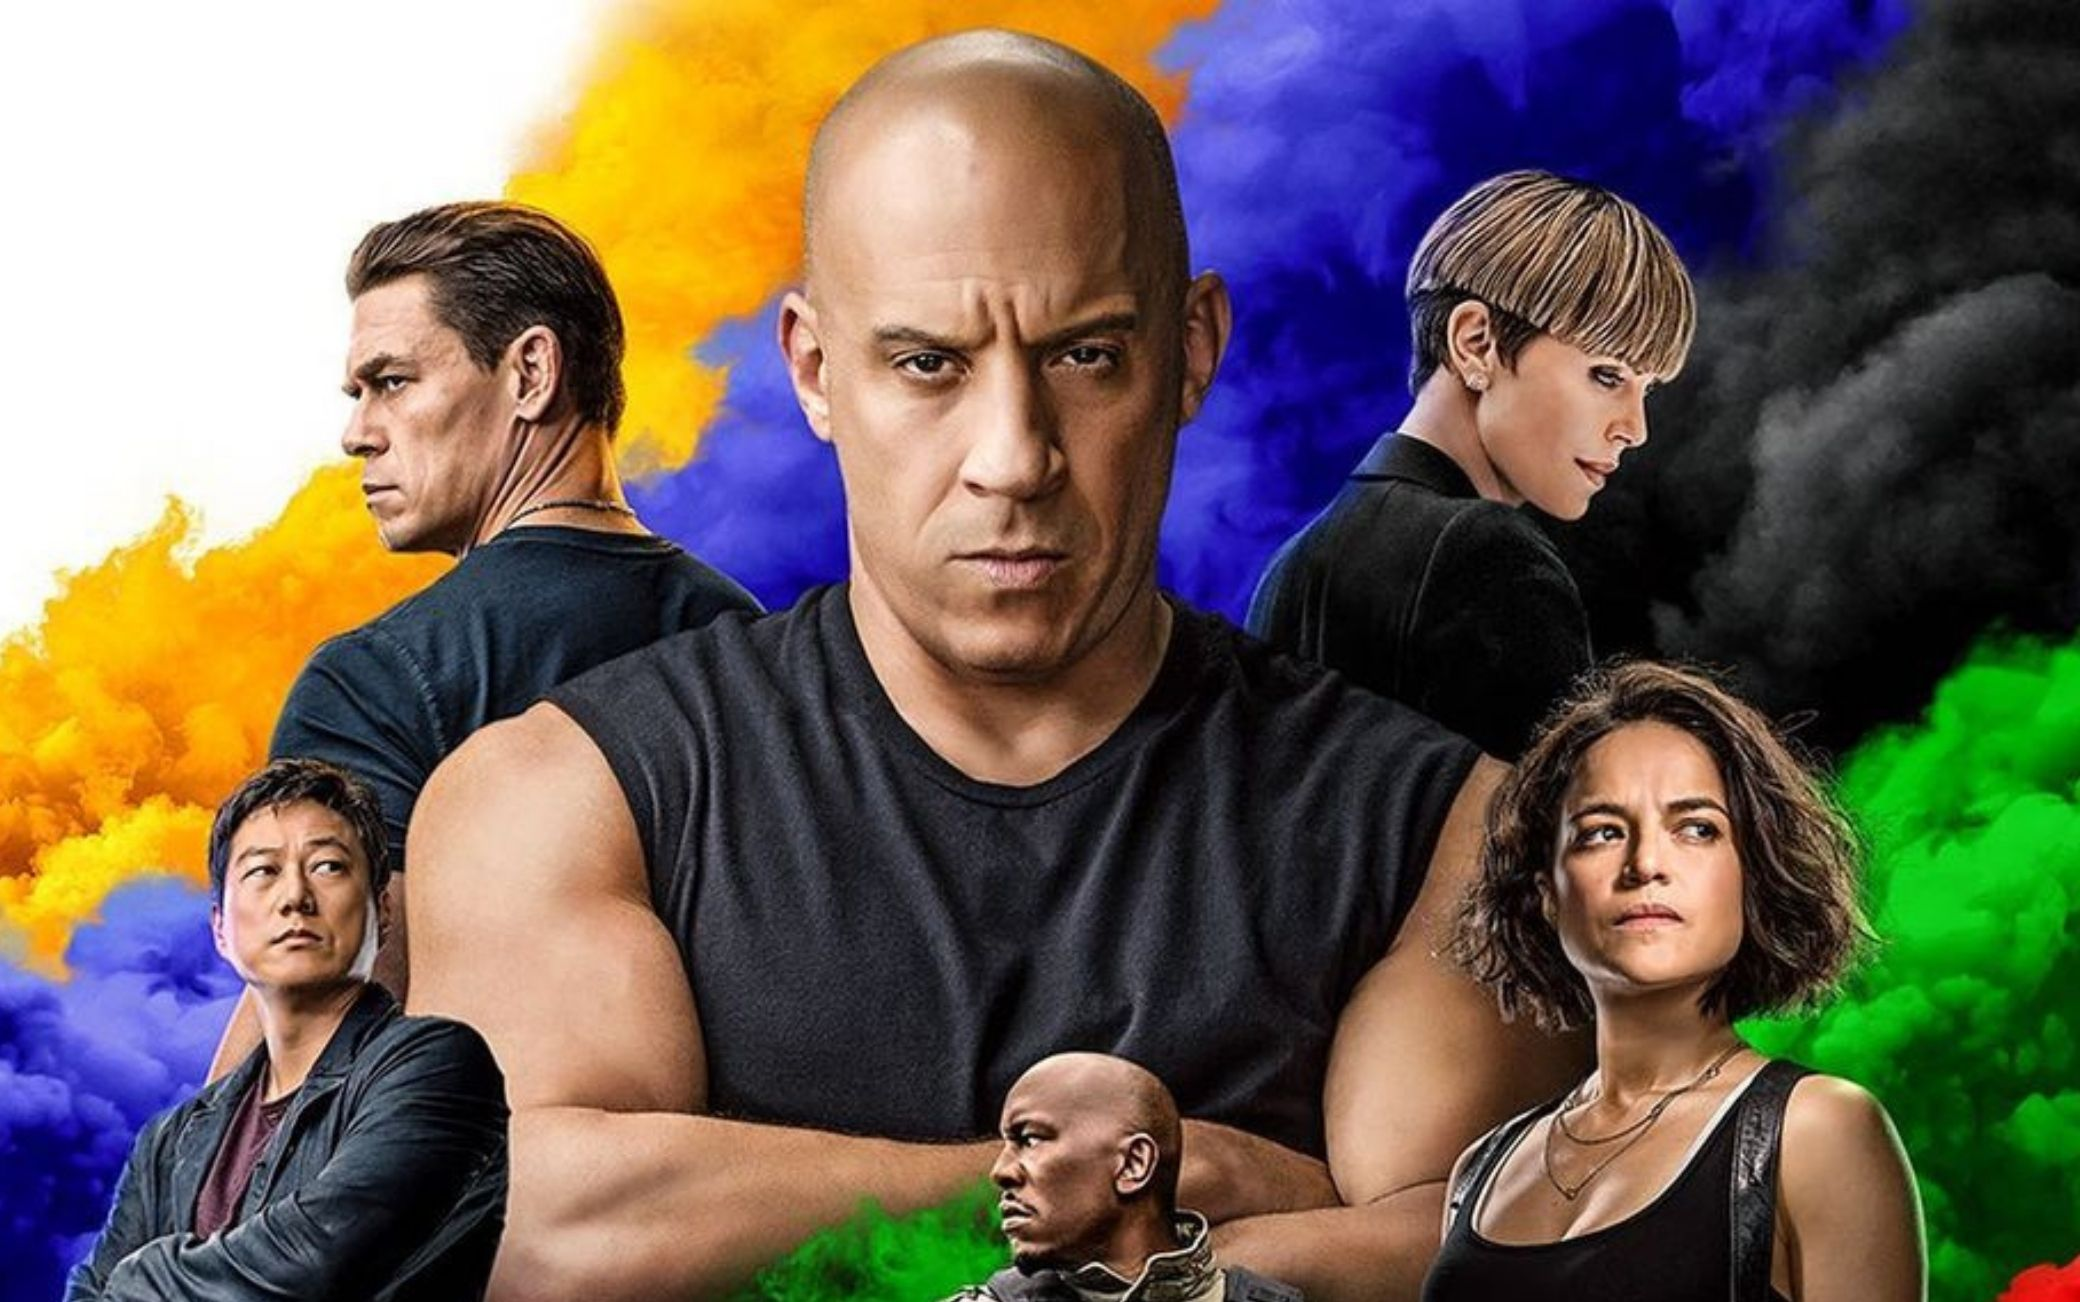 nuovo trailer Fast & Furious 9